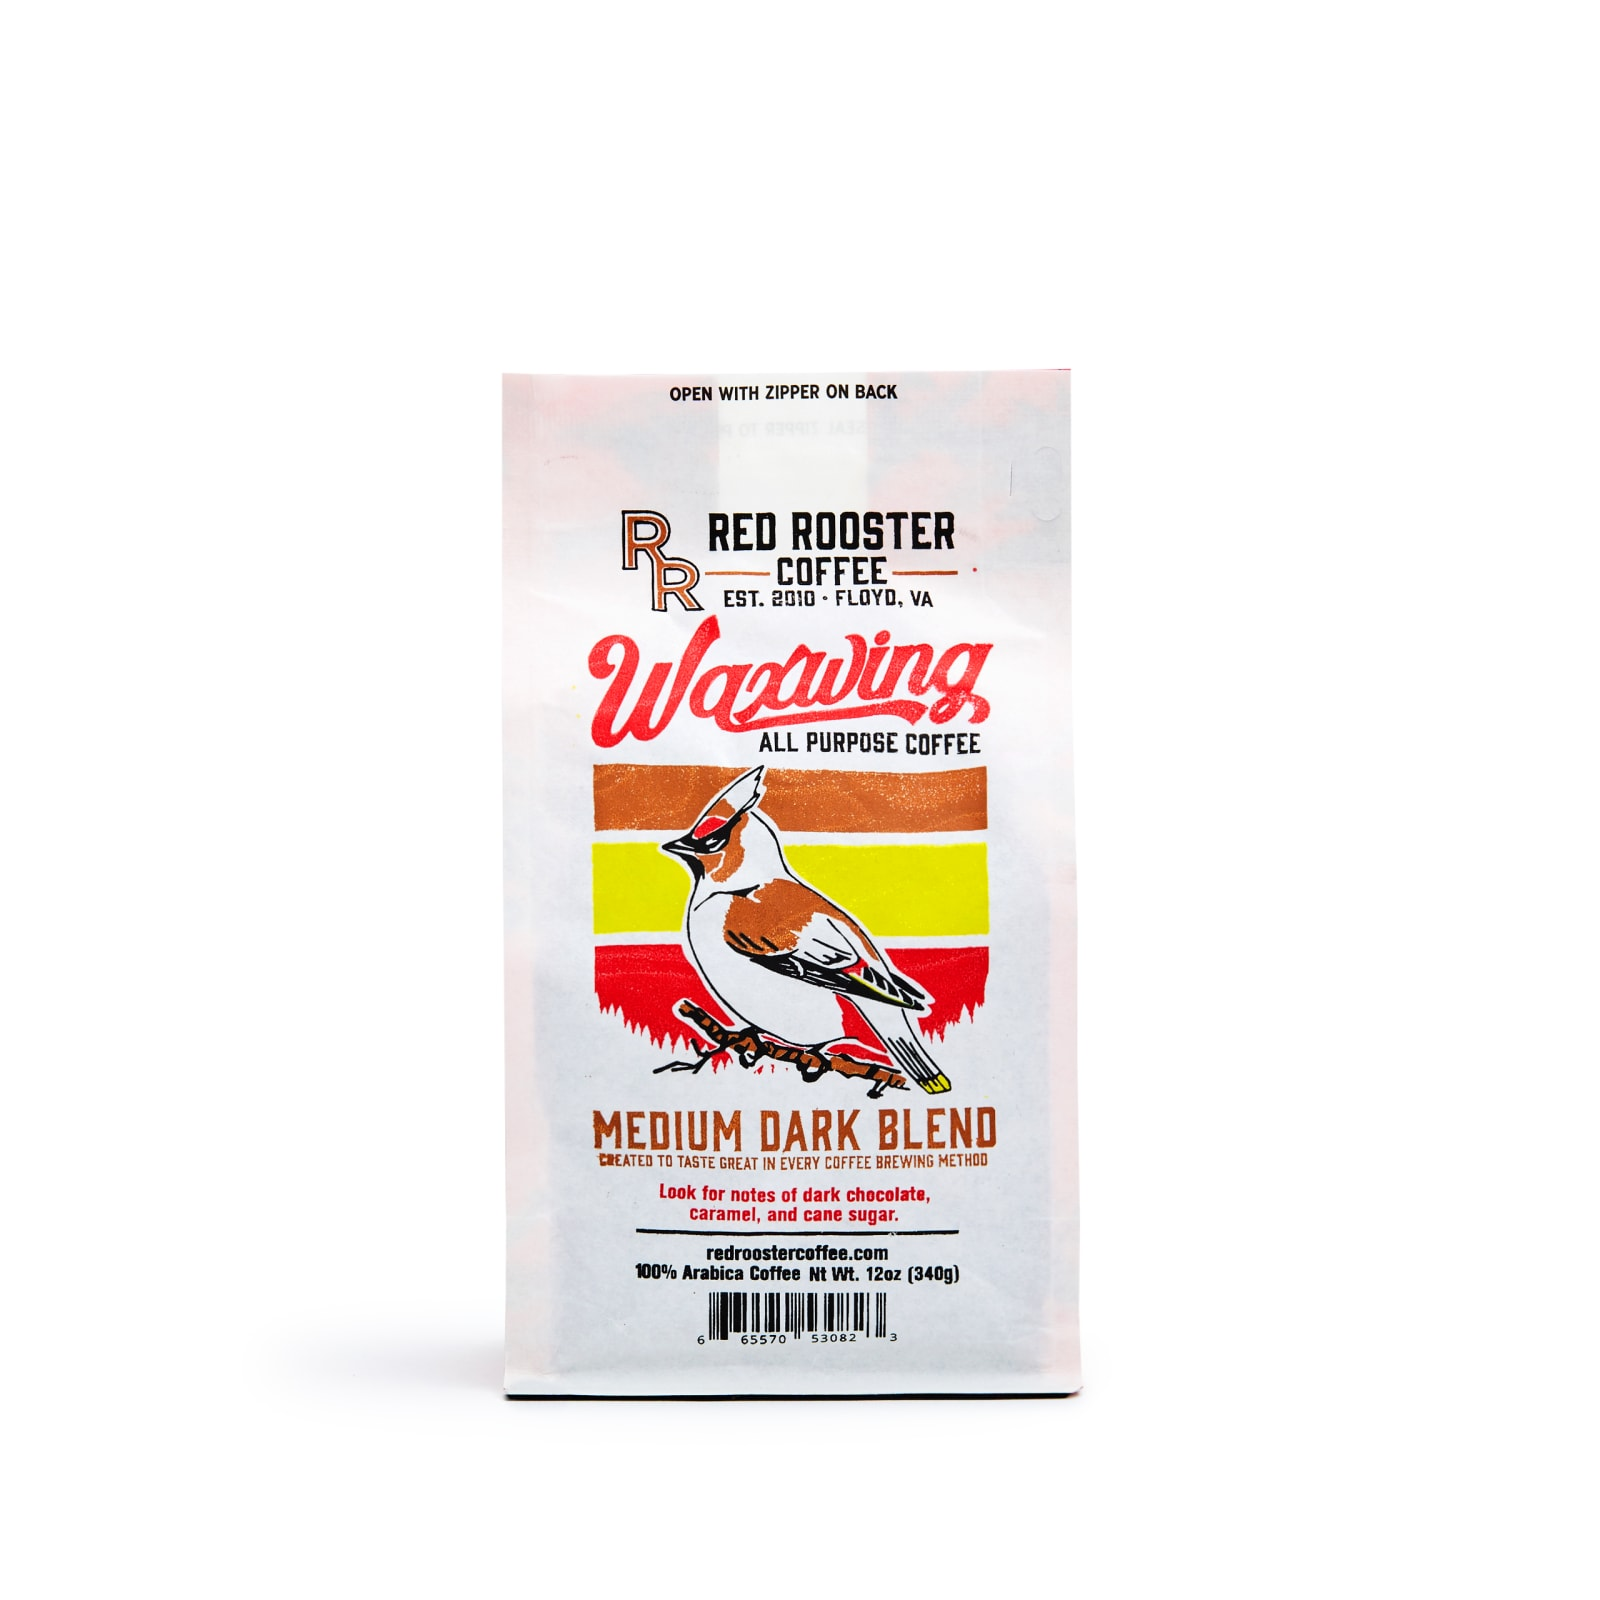 Waxwing - 5 lb bag